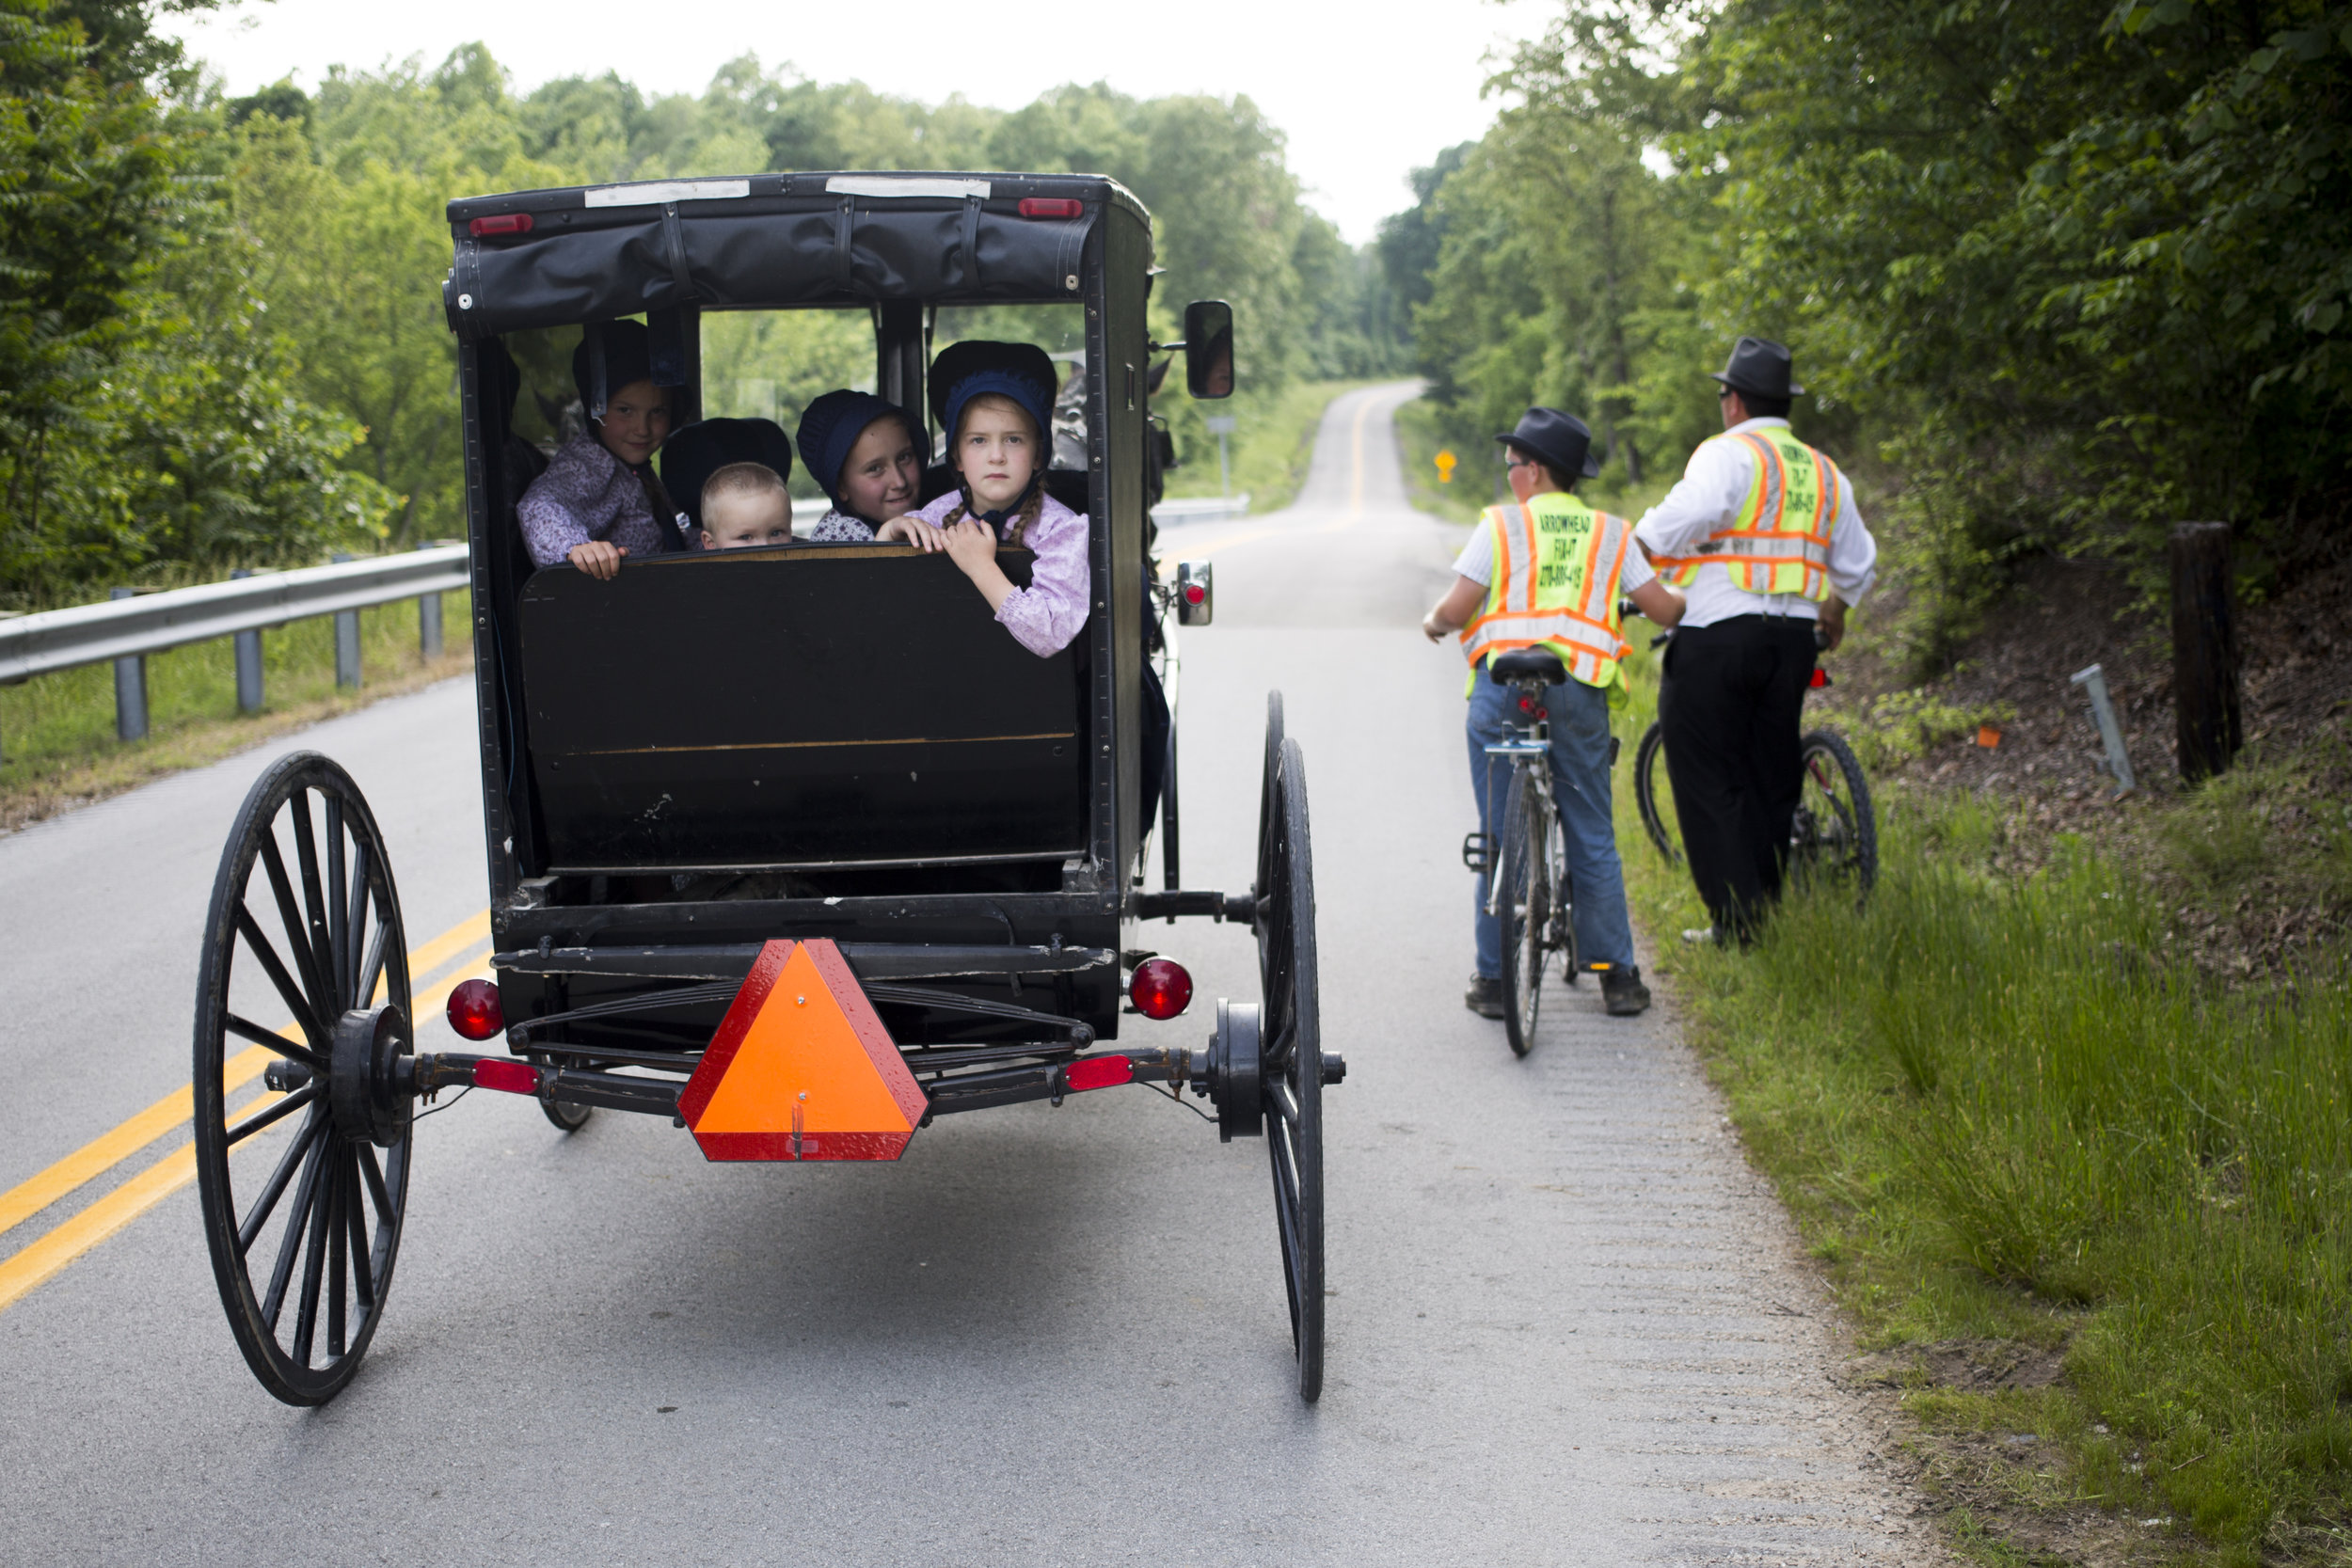 Filled with inquisitive stares from its passengers an amish buggy strolls casually down a country backroad outside of Hopkinsville, Ky. 2015.